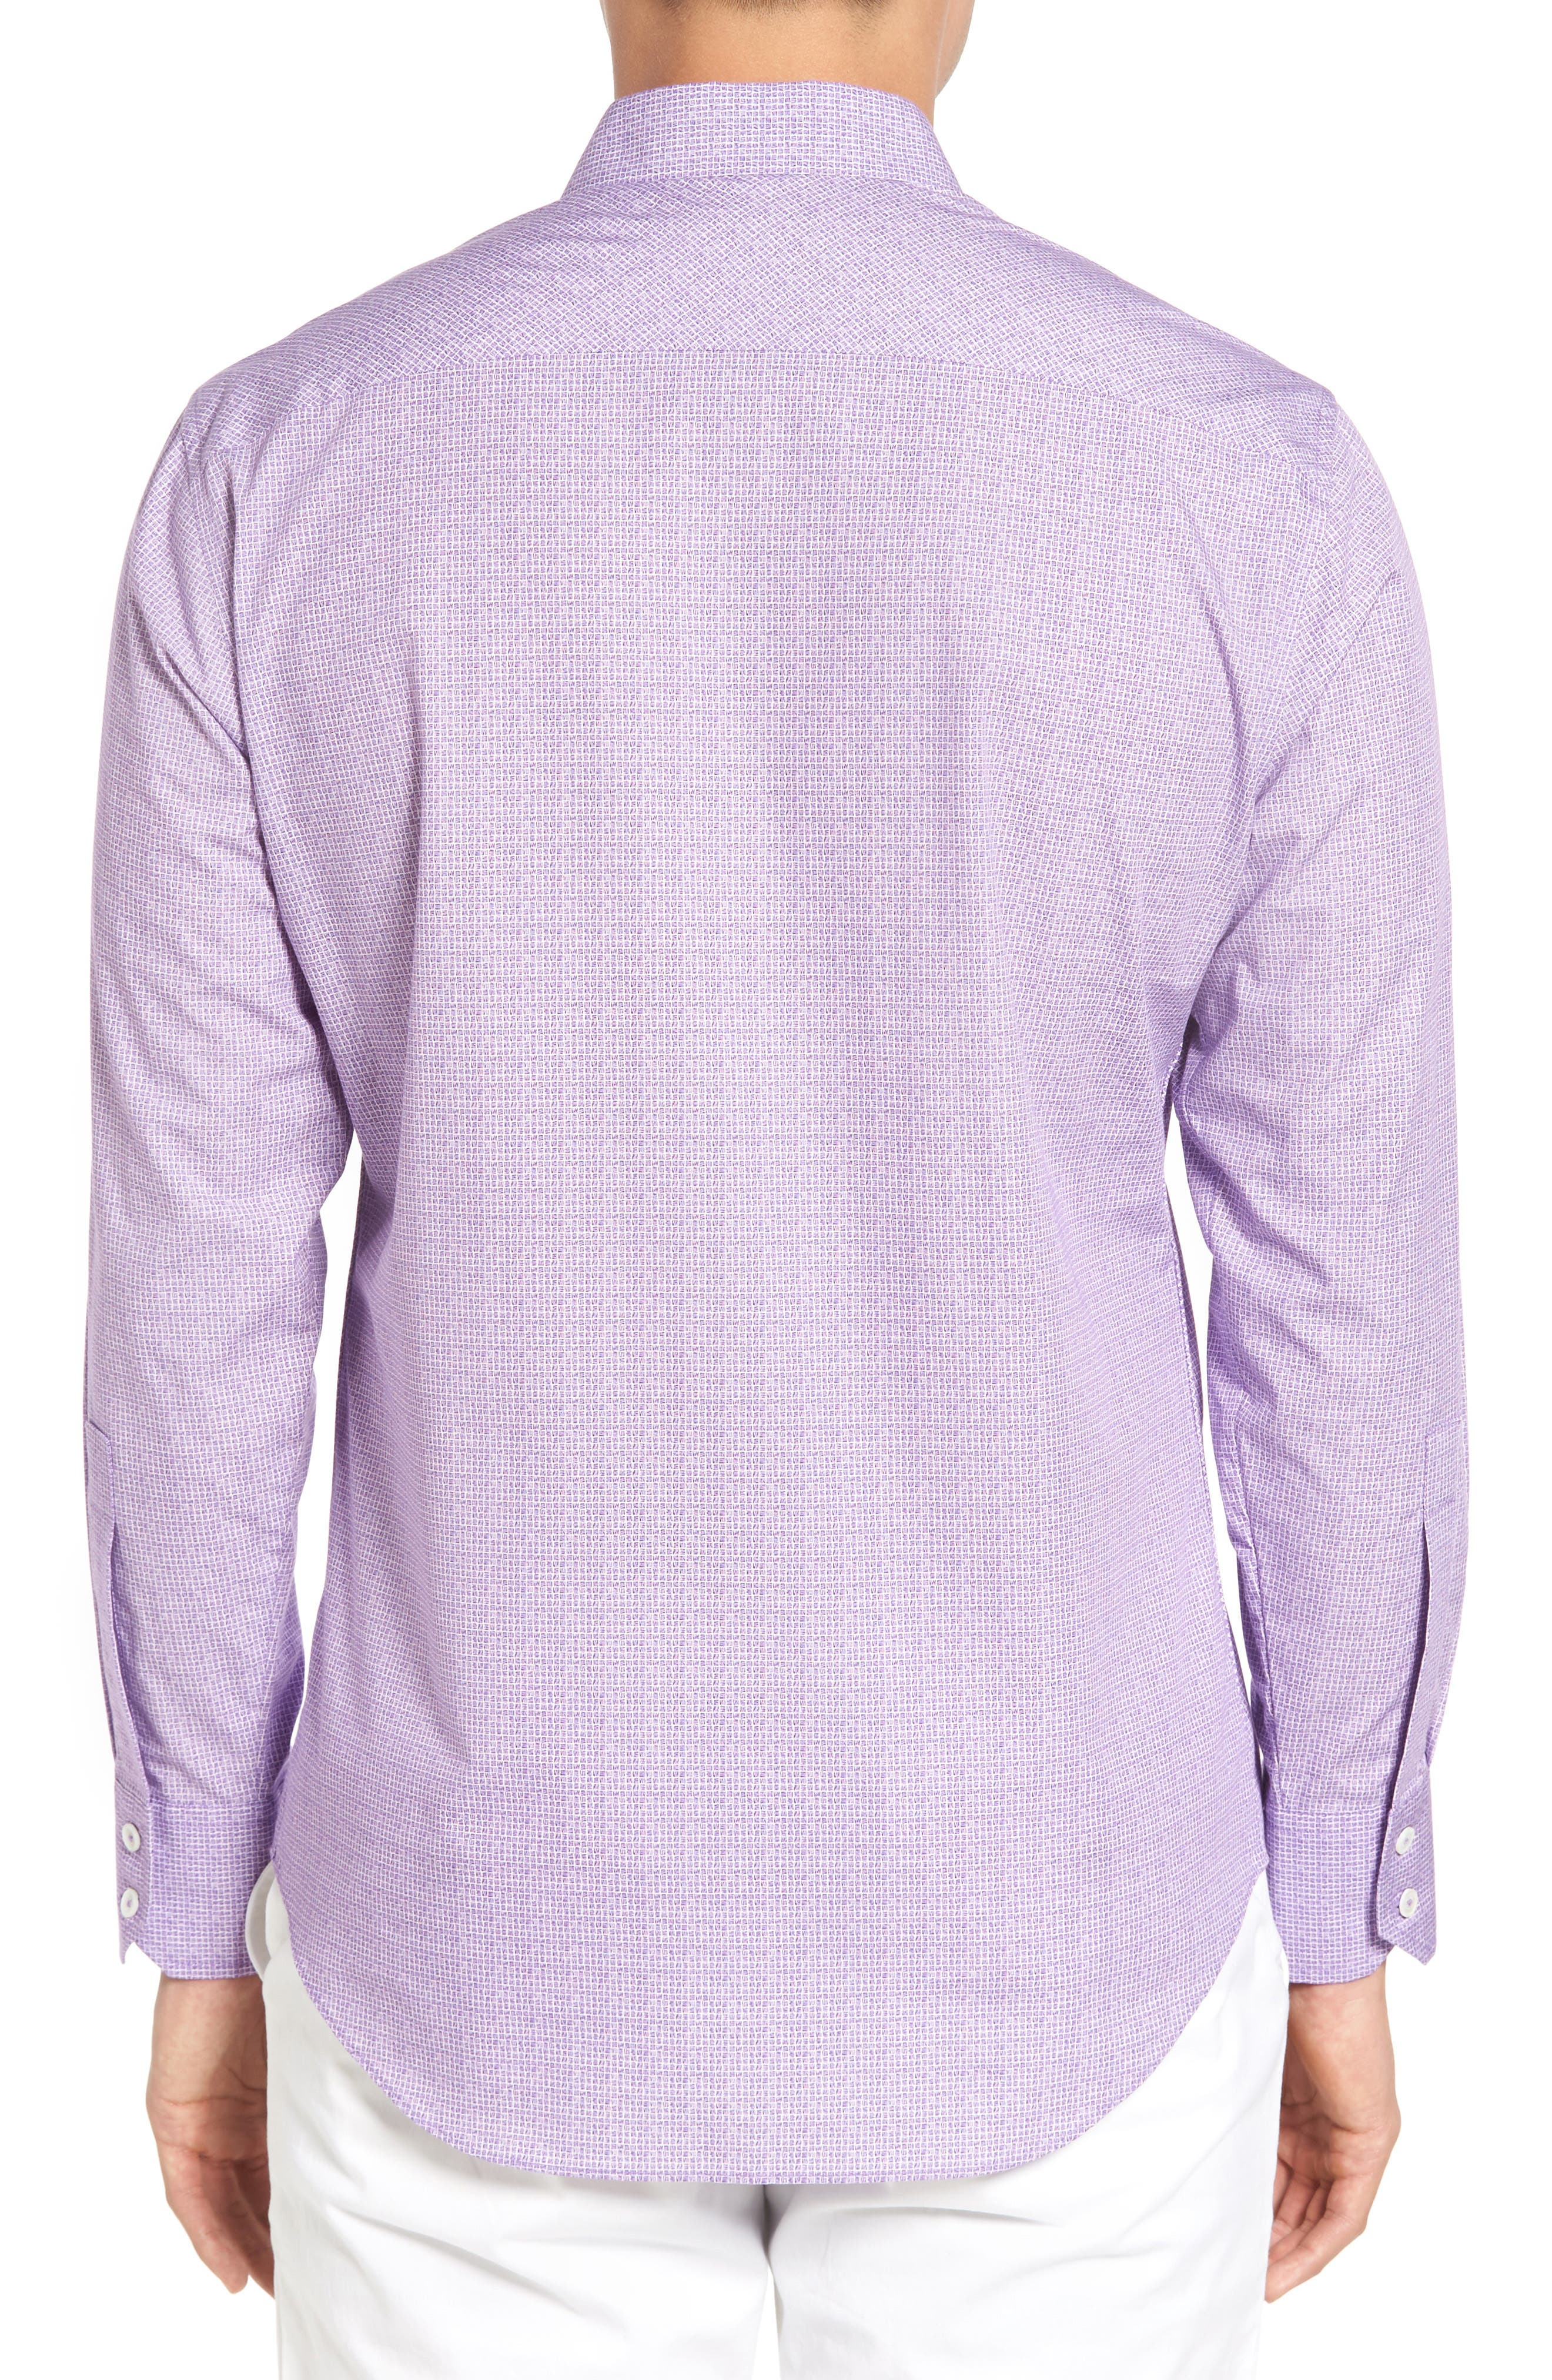 Alternate Image 2  - Zachary Prell McDesmond Trim Fit Print Sport Shirt